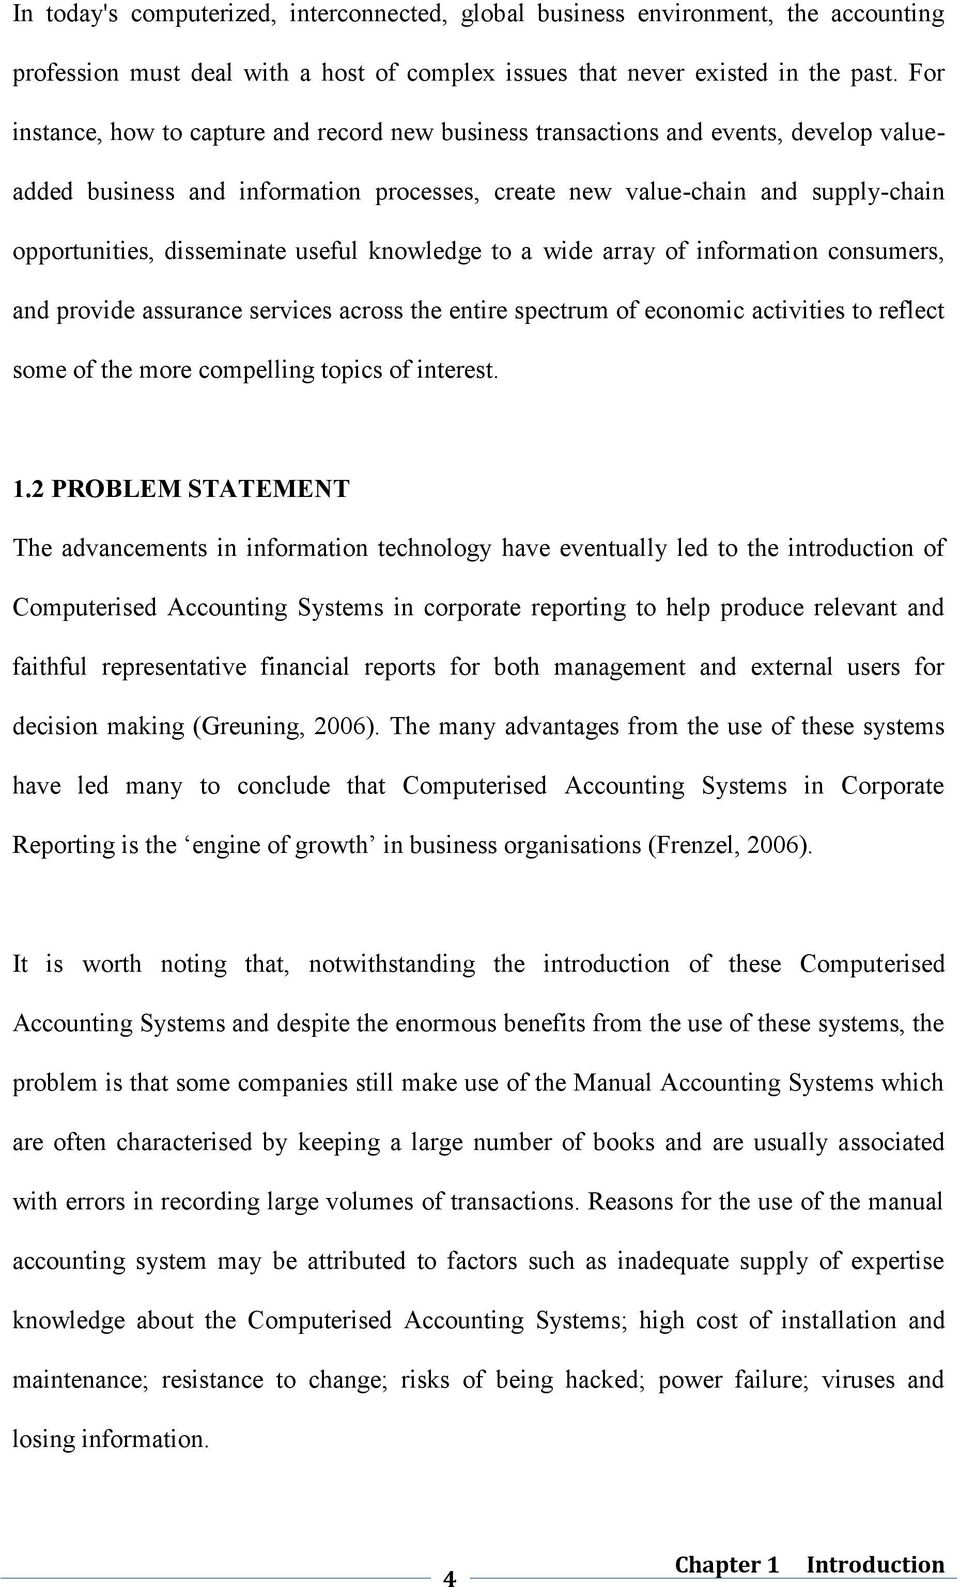 impact of computerized accounting system on financial reporting